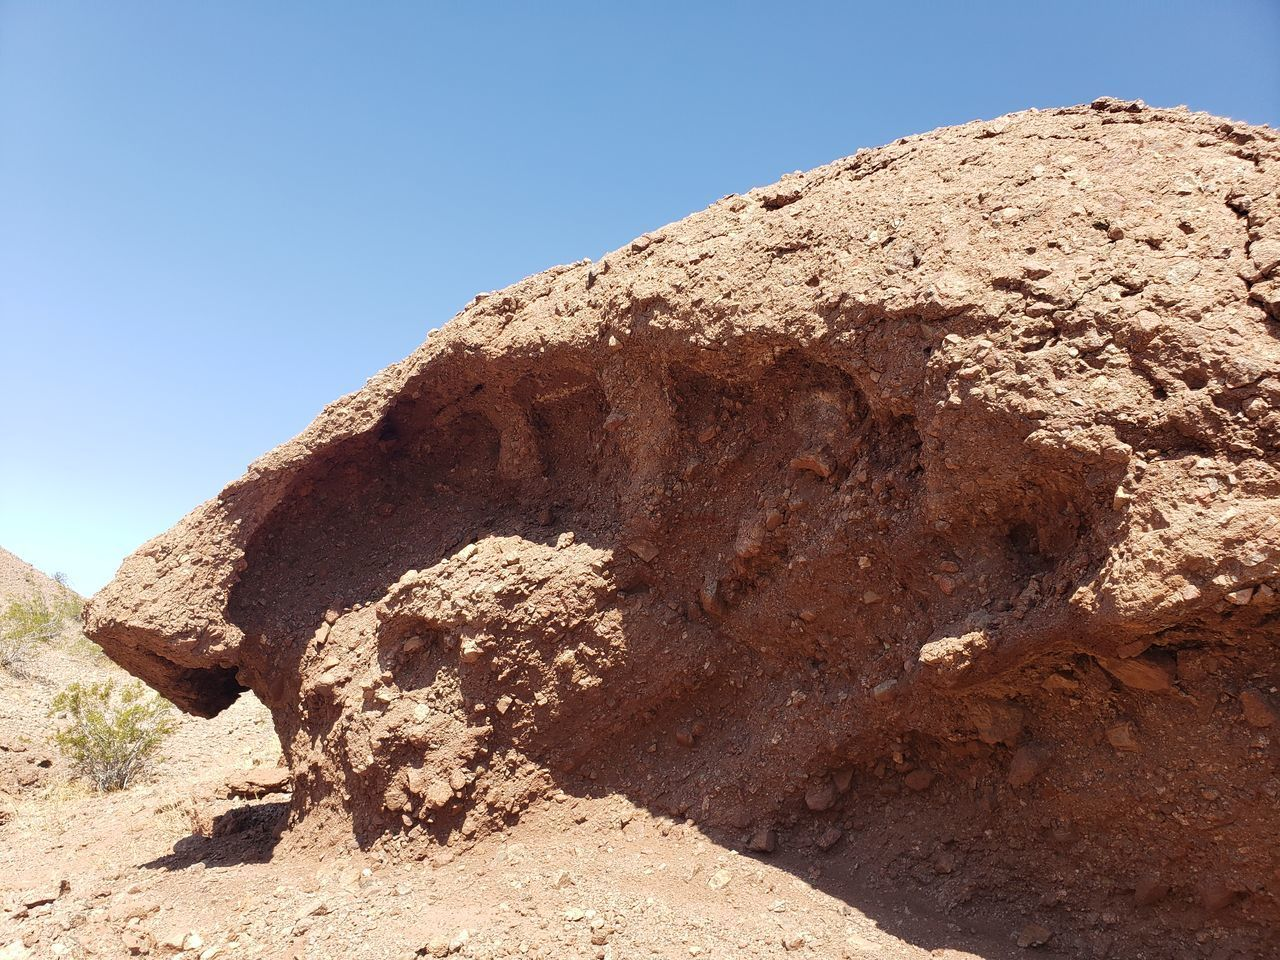 rock, sunlight, rock - object, rock formation, sky, nature, solid, clear sky, tranquility, day, land, geology, no people, tranquil scene, physical geography, desert, scenics - nature, beauty in nature, low angle view, non-urban scene, outdoors, climate, eroded, arid climate